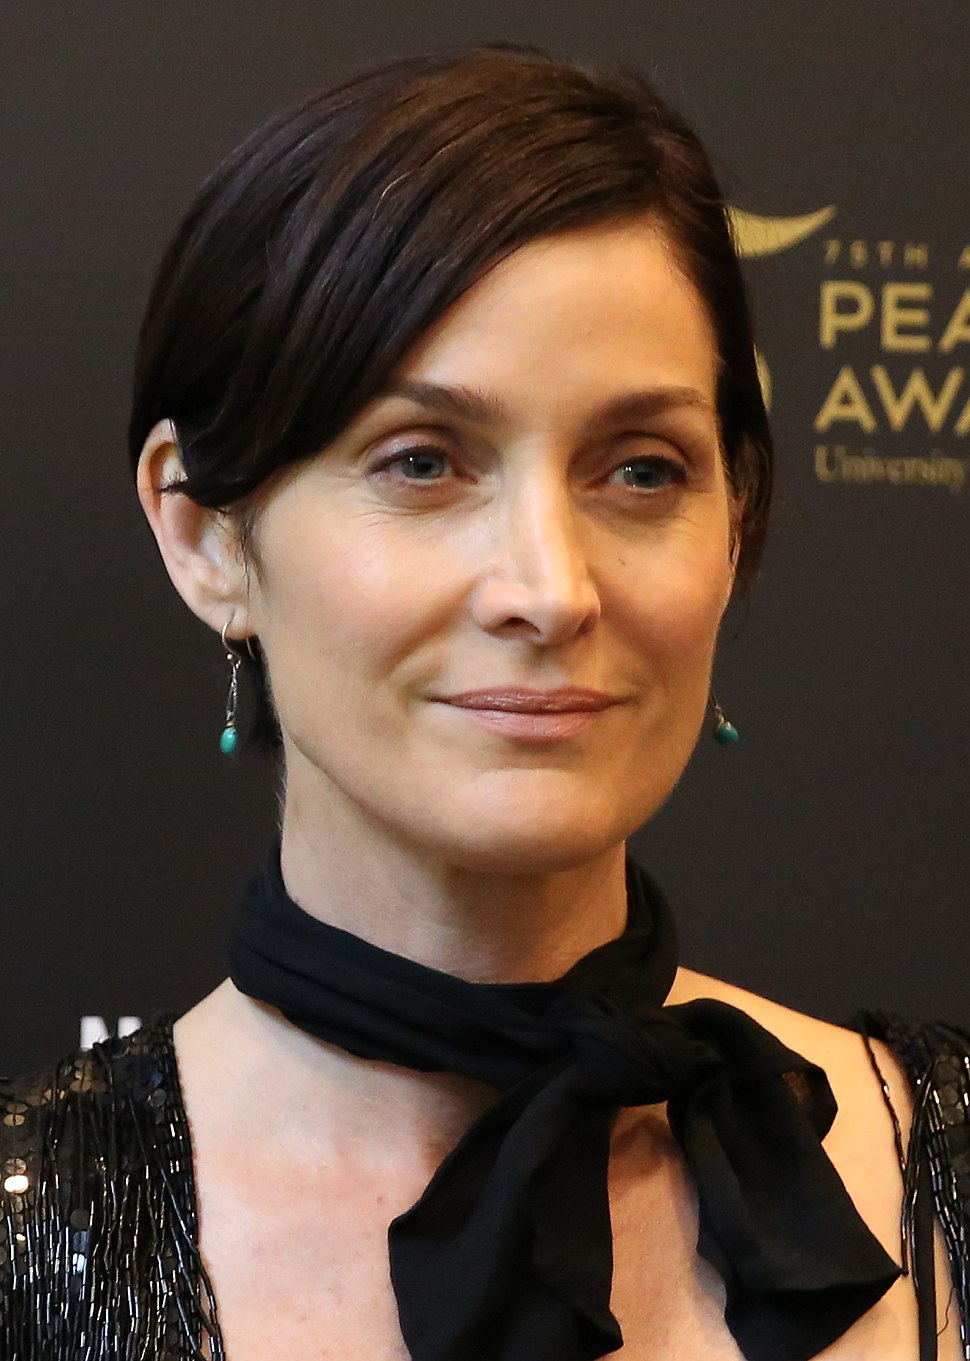 Carrie-Anne Moss May 2016